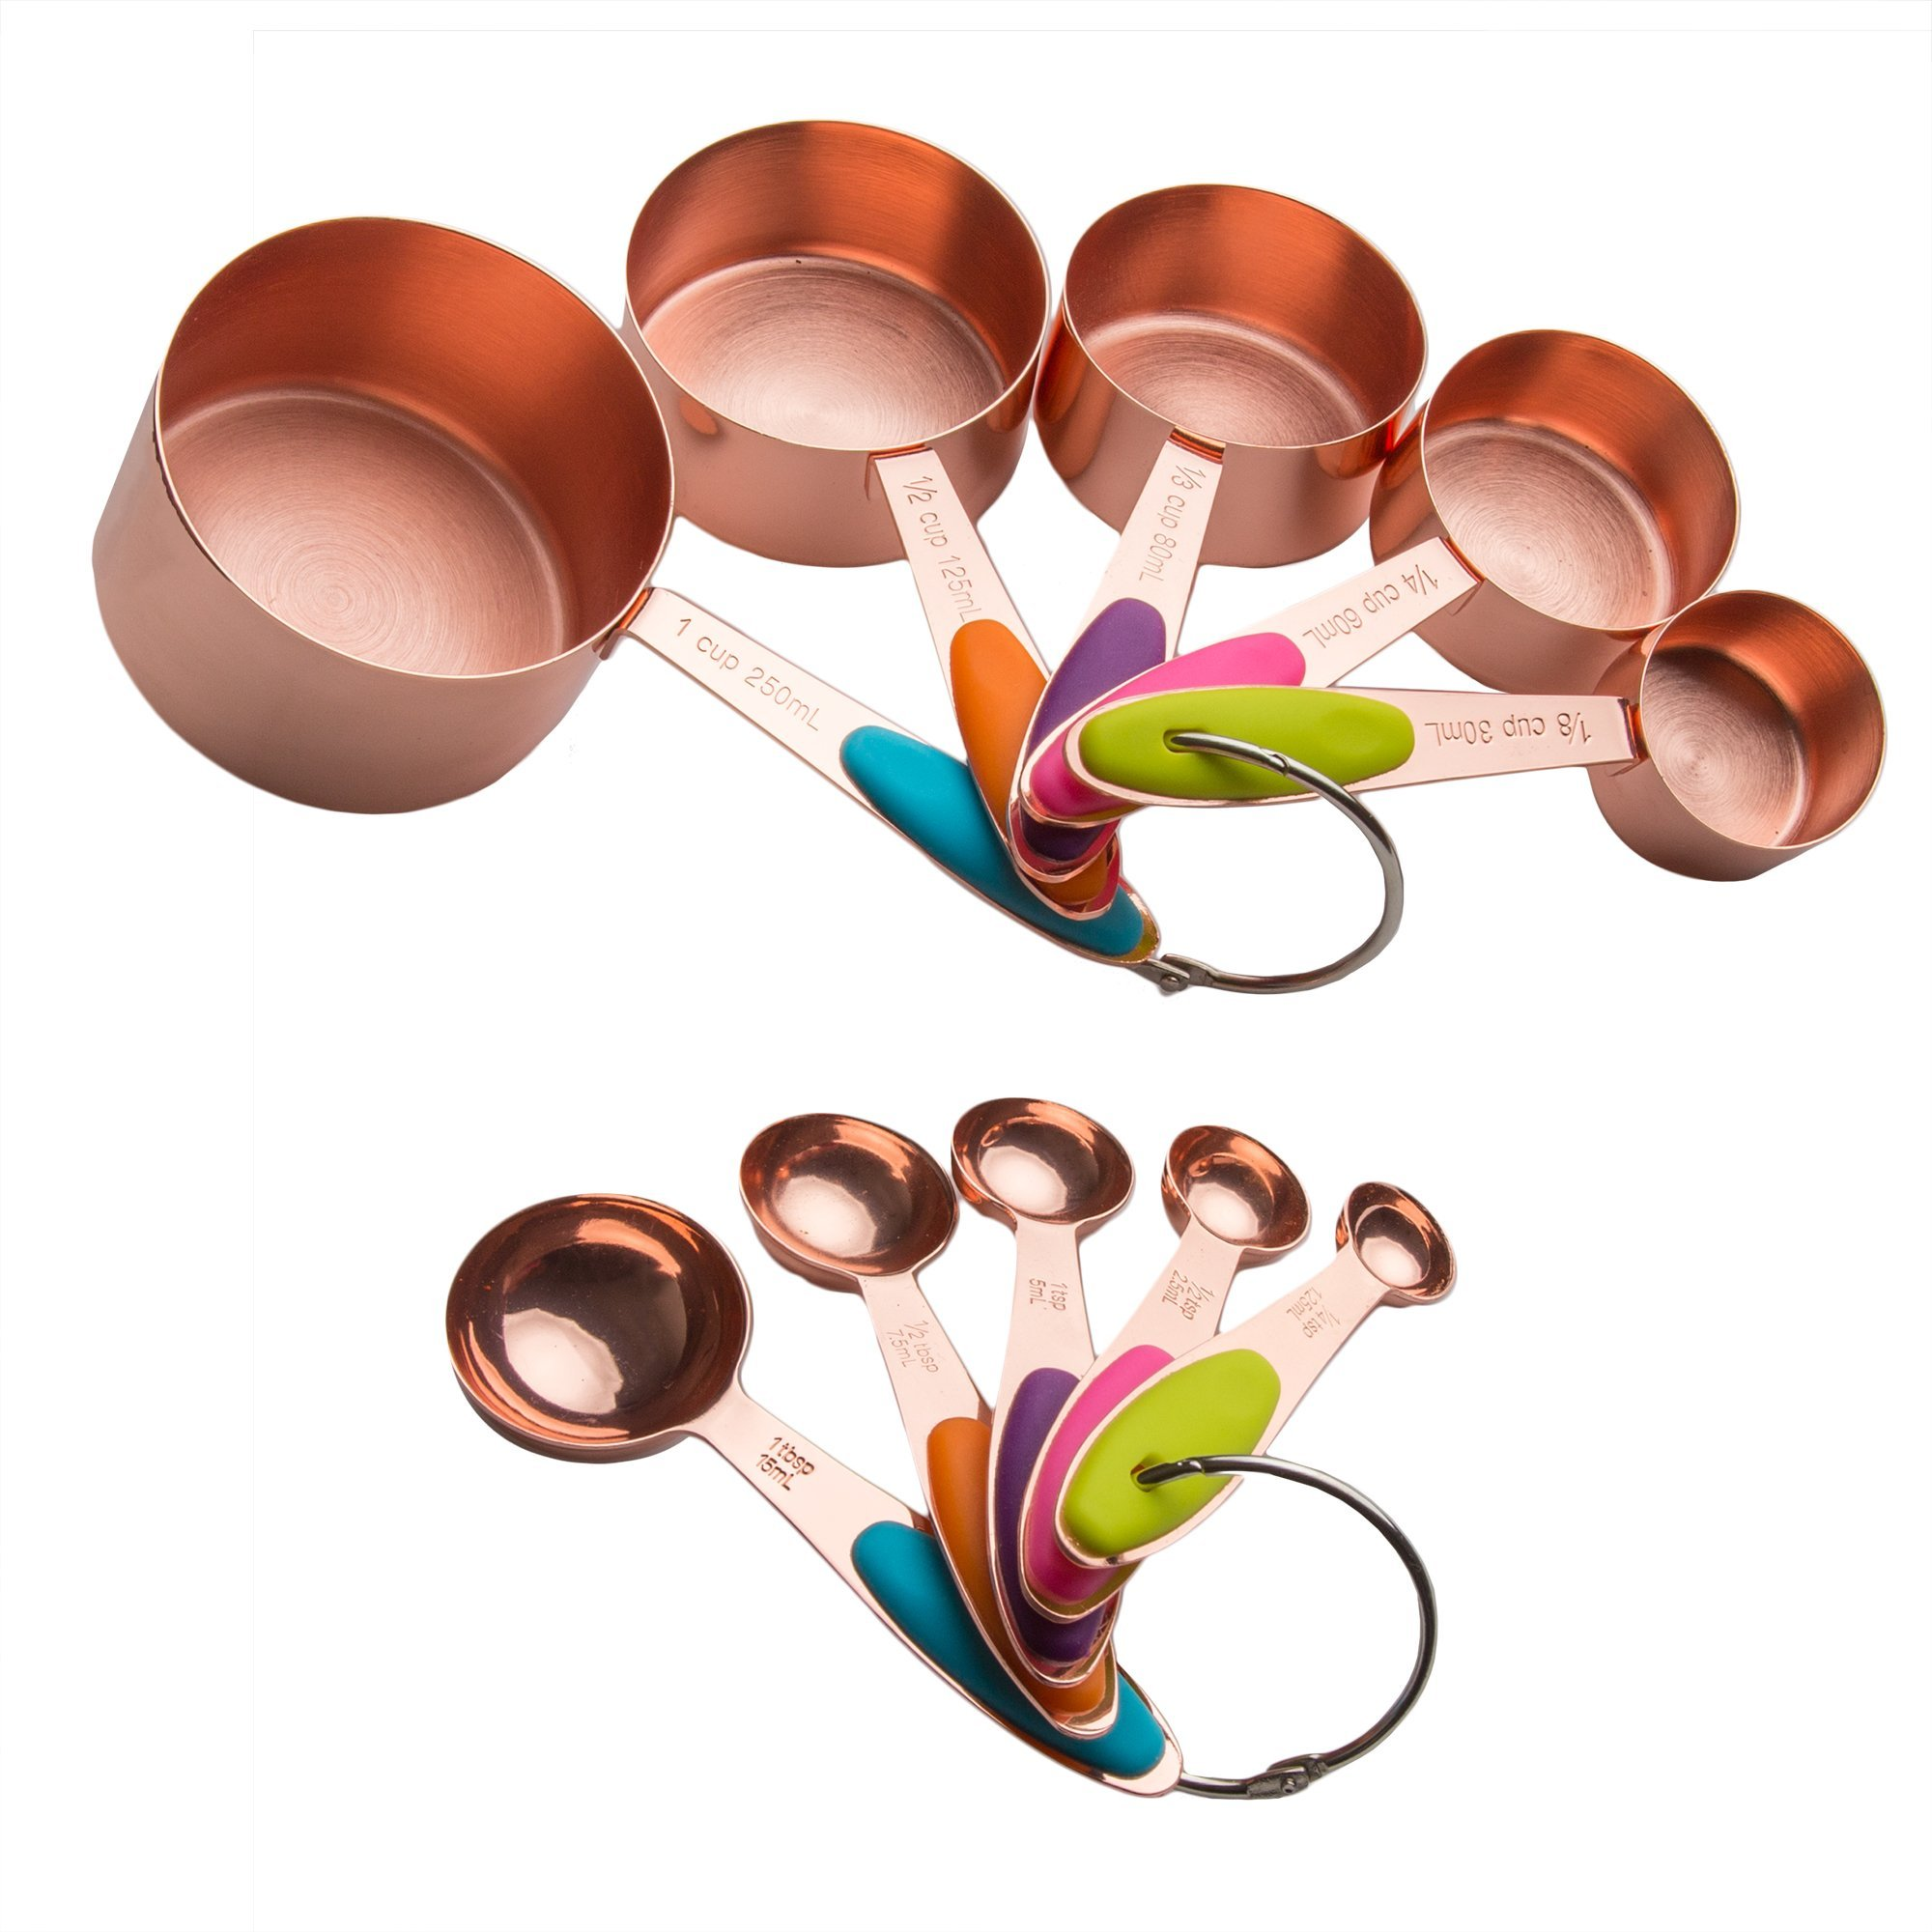 Copper Stainless Steel Measuring Cups and Spoons Set of 10 | Liquid Measuring Cups and Liquid Measuring Spoons or Dry Measuring Cups and Dry Measuring Spoons | Stackable, Nesting Measuring Cups Set